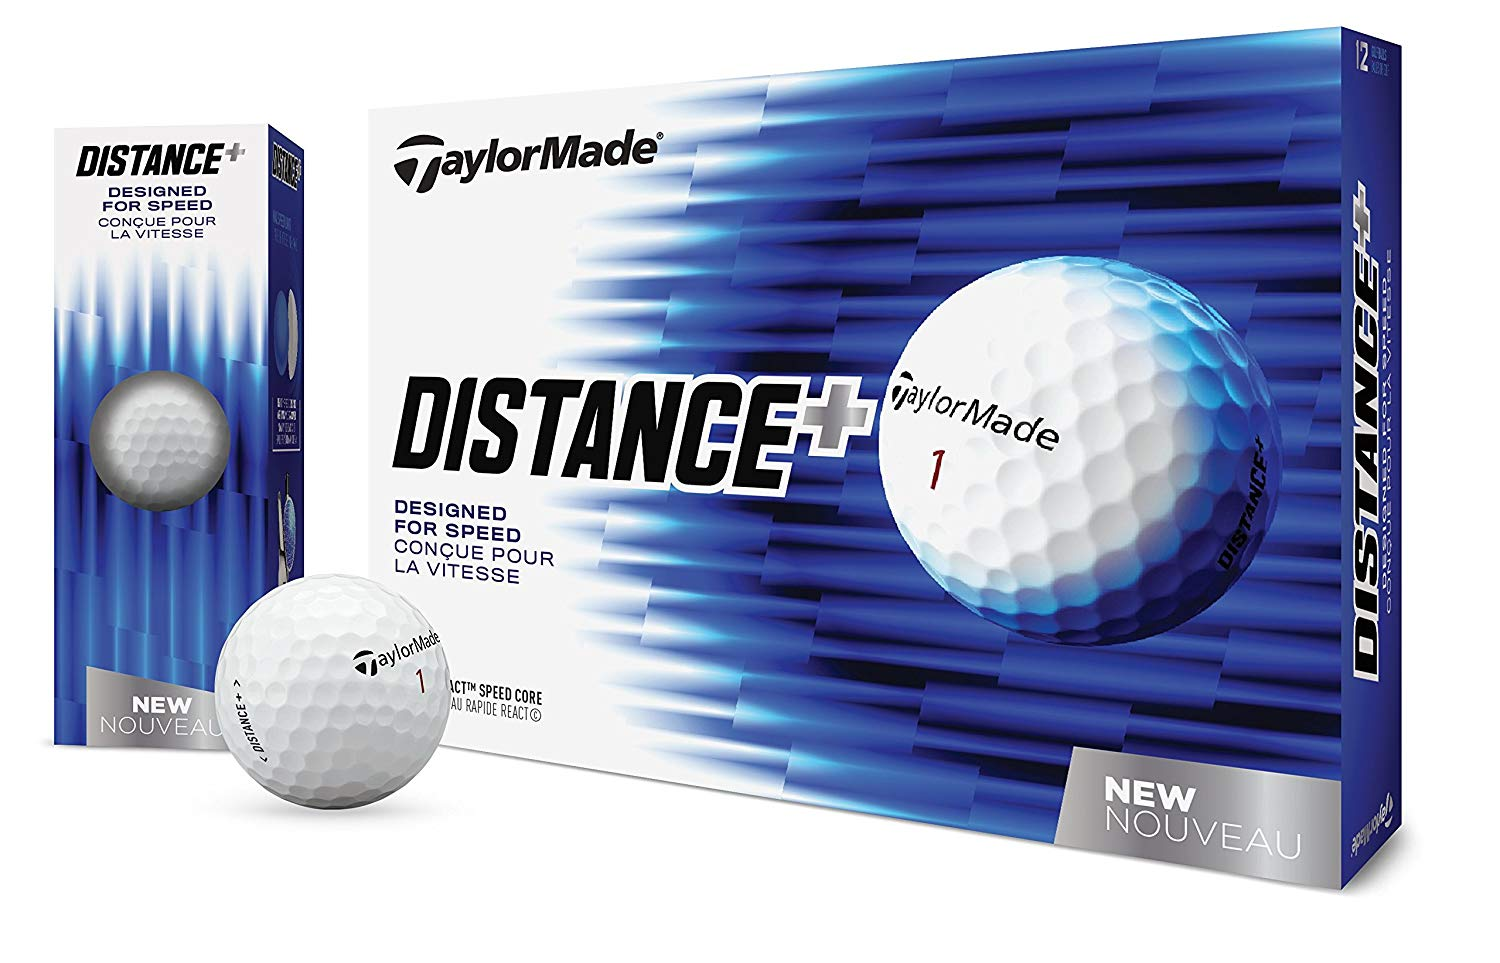 bong-golf-distance-taylormad